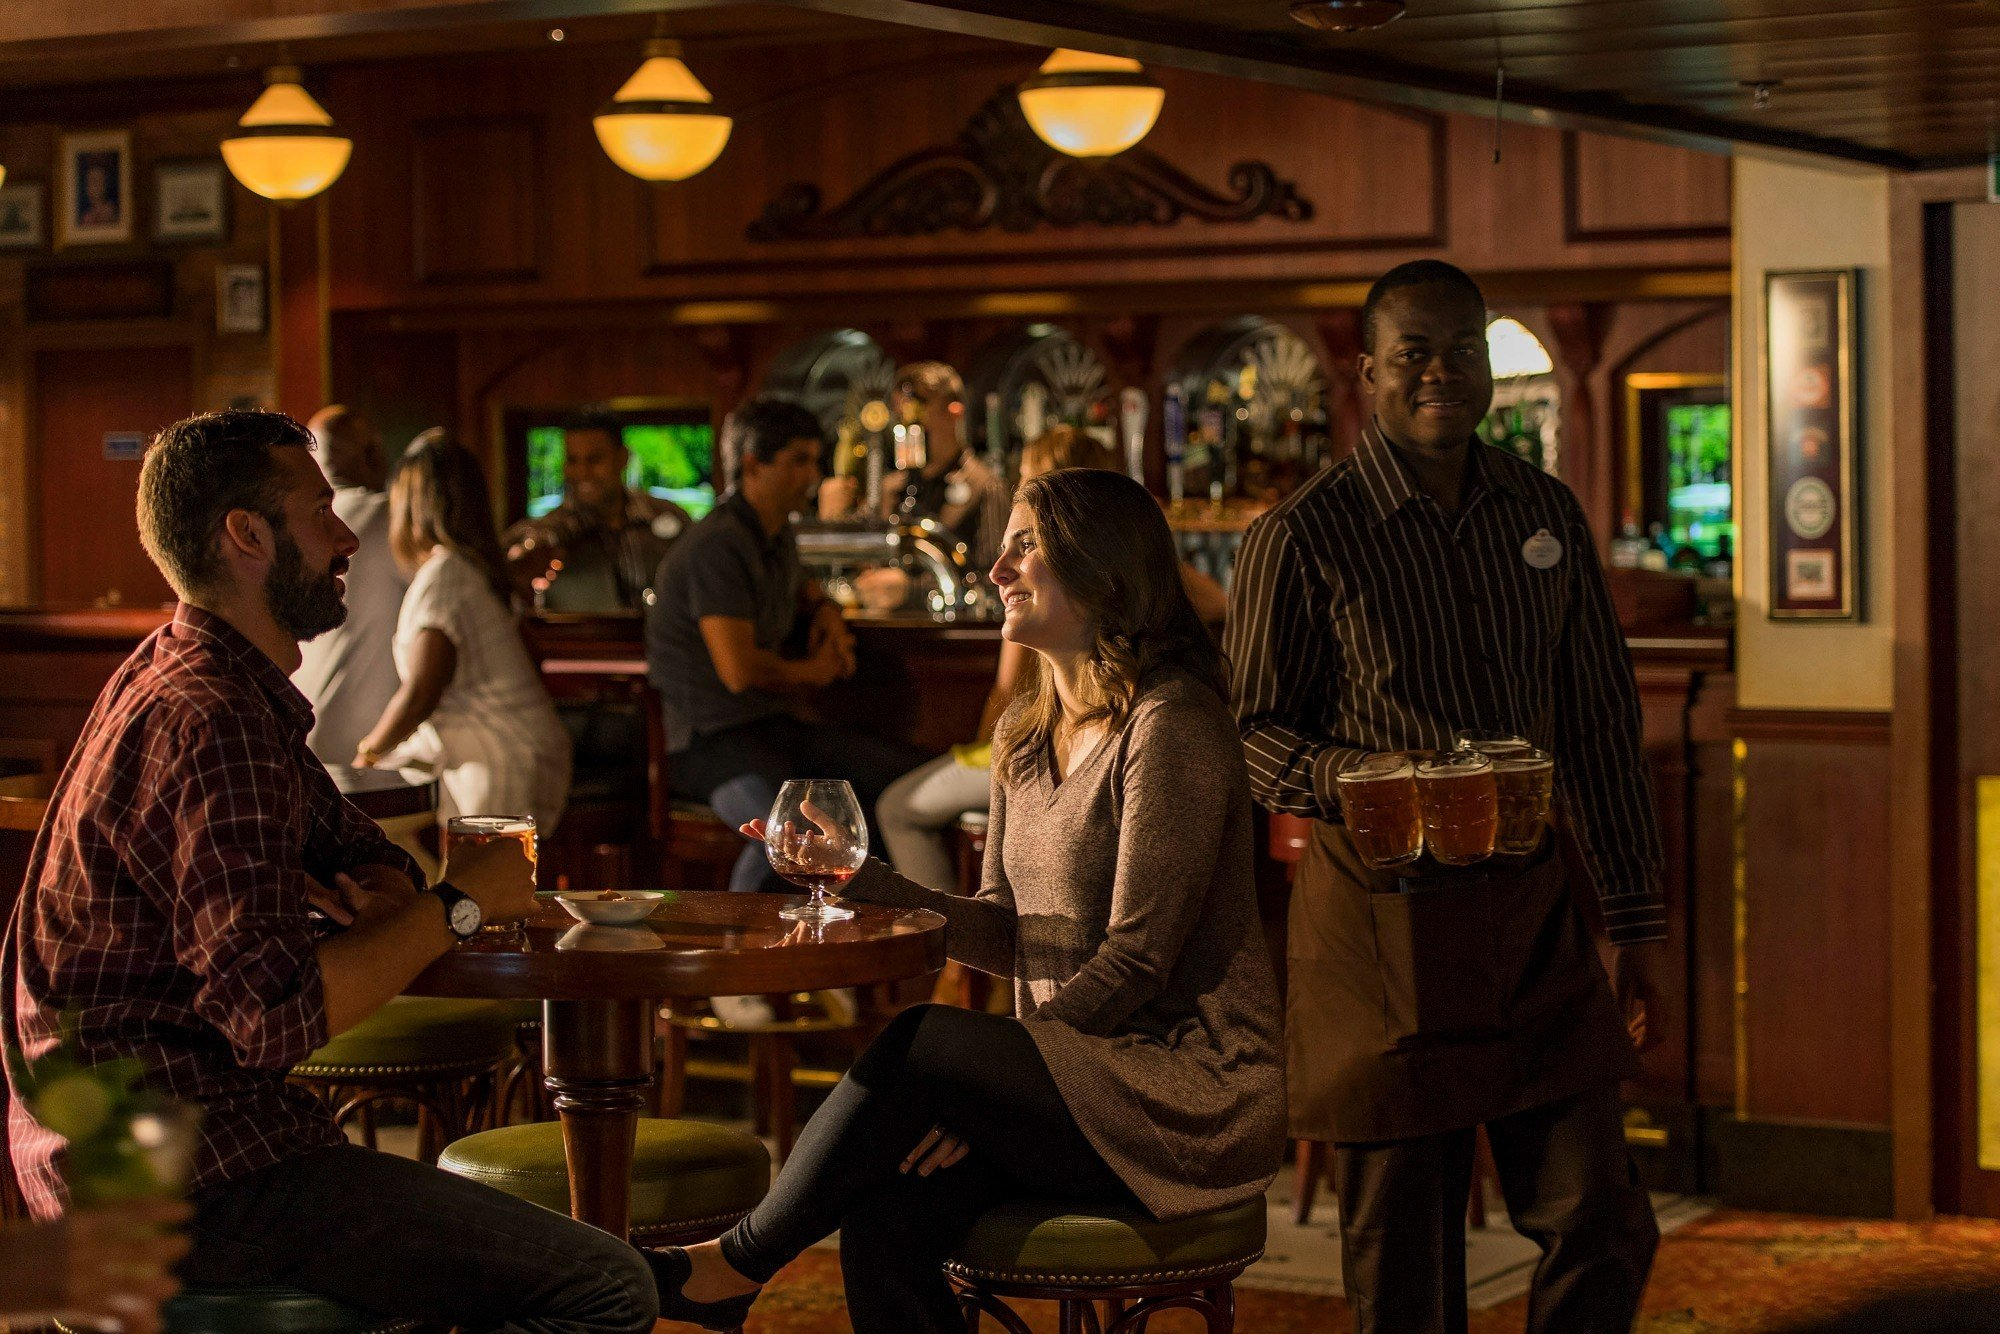 San Diego Disney Cruises provide adults with plenty of alone time.